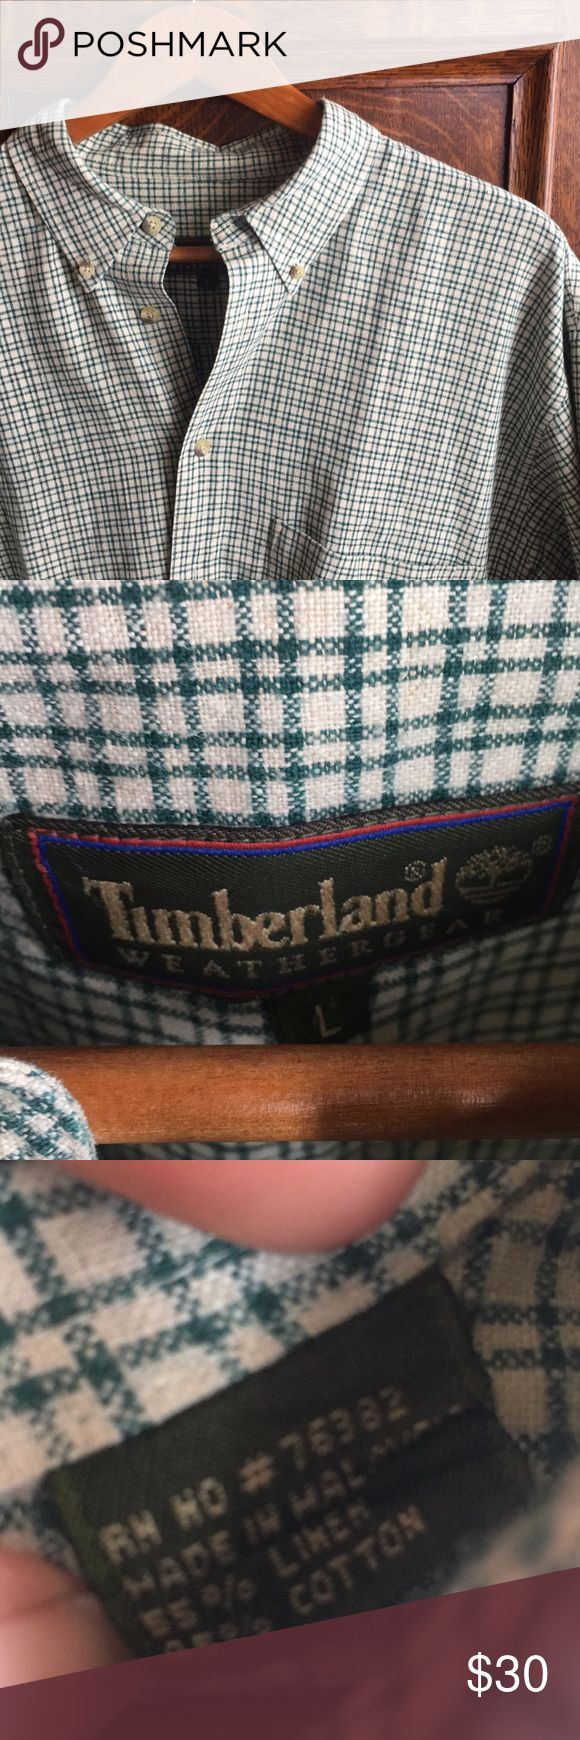 TIMBERLAND Men's Linen Blend Buttondown LIKE NEW - Timberland Linen Cotton Blend Long Sleeve Button Down - Green and Stone - Size Large   Sleeve 29 Chest 25 Length 30 Timberland Shirts